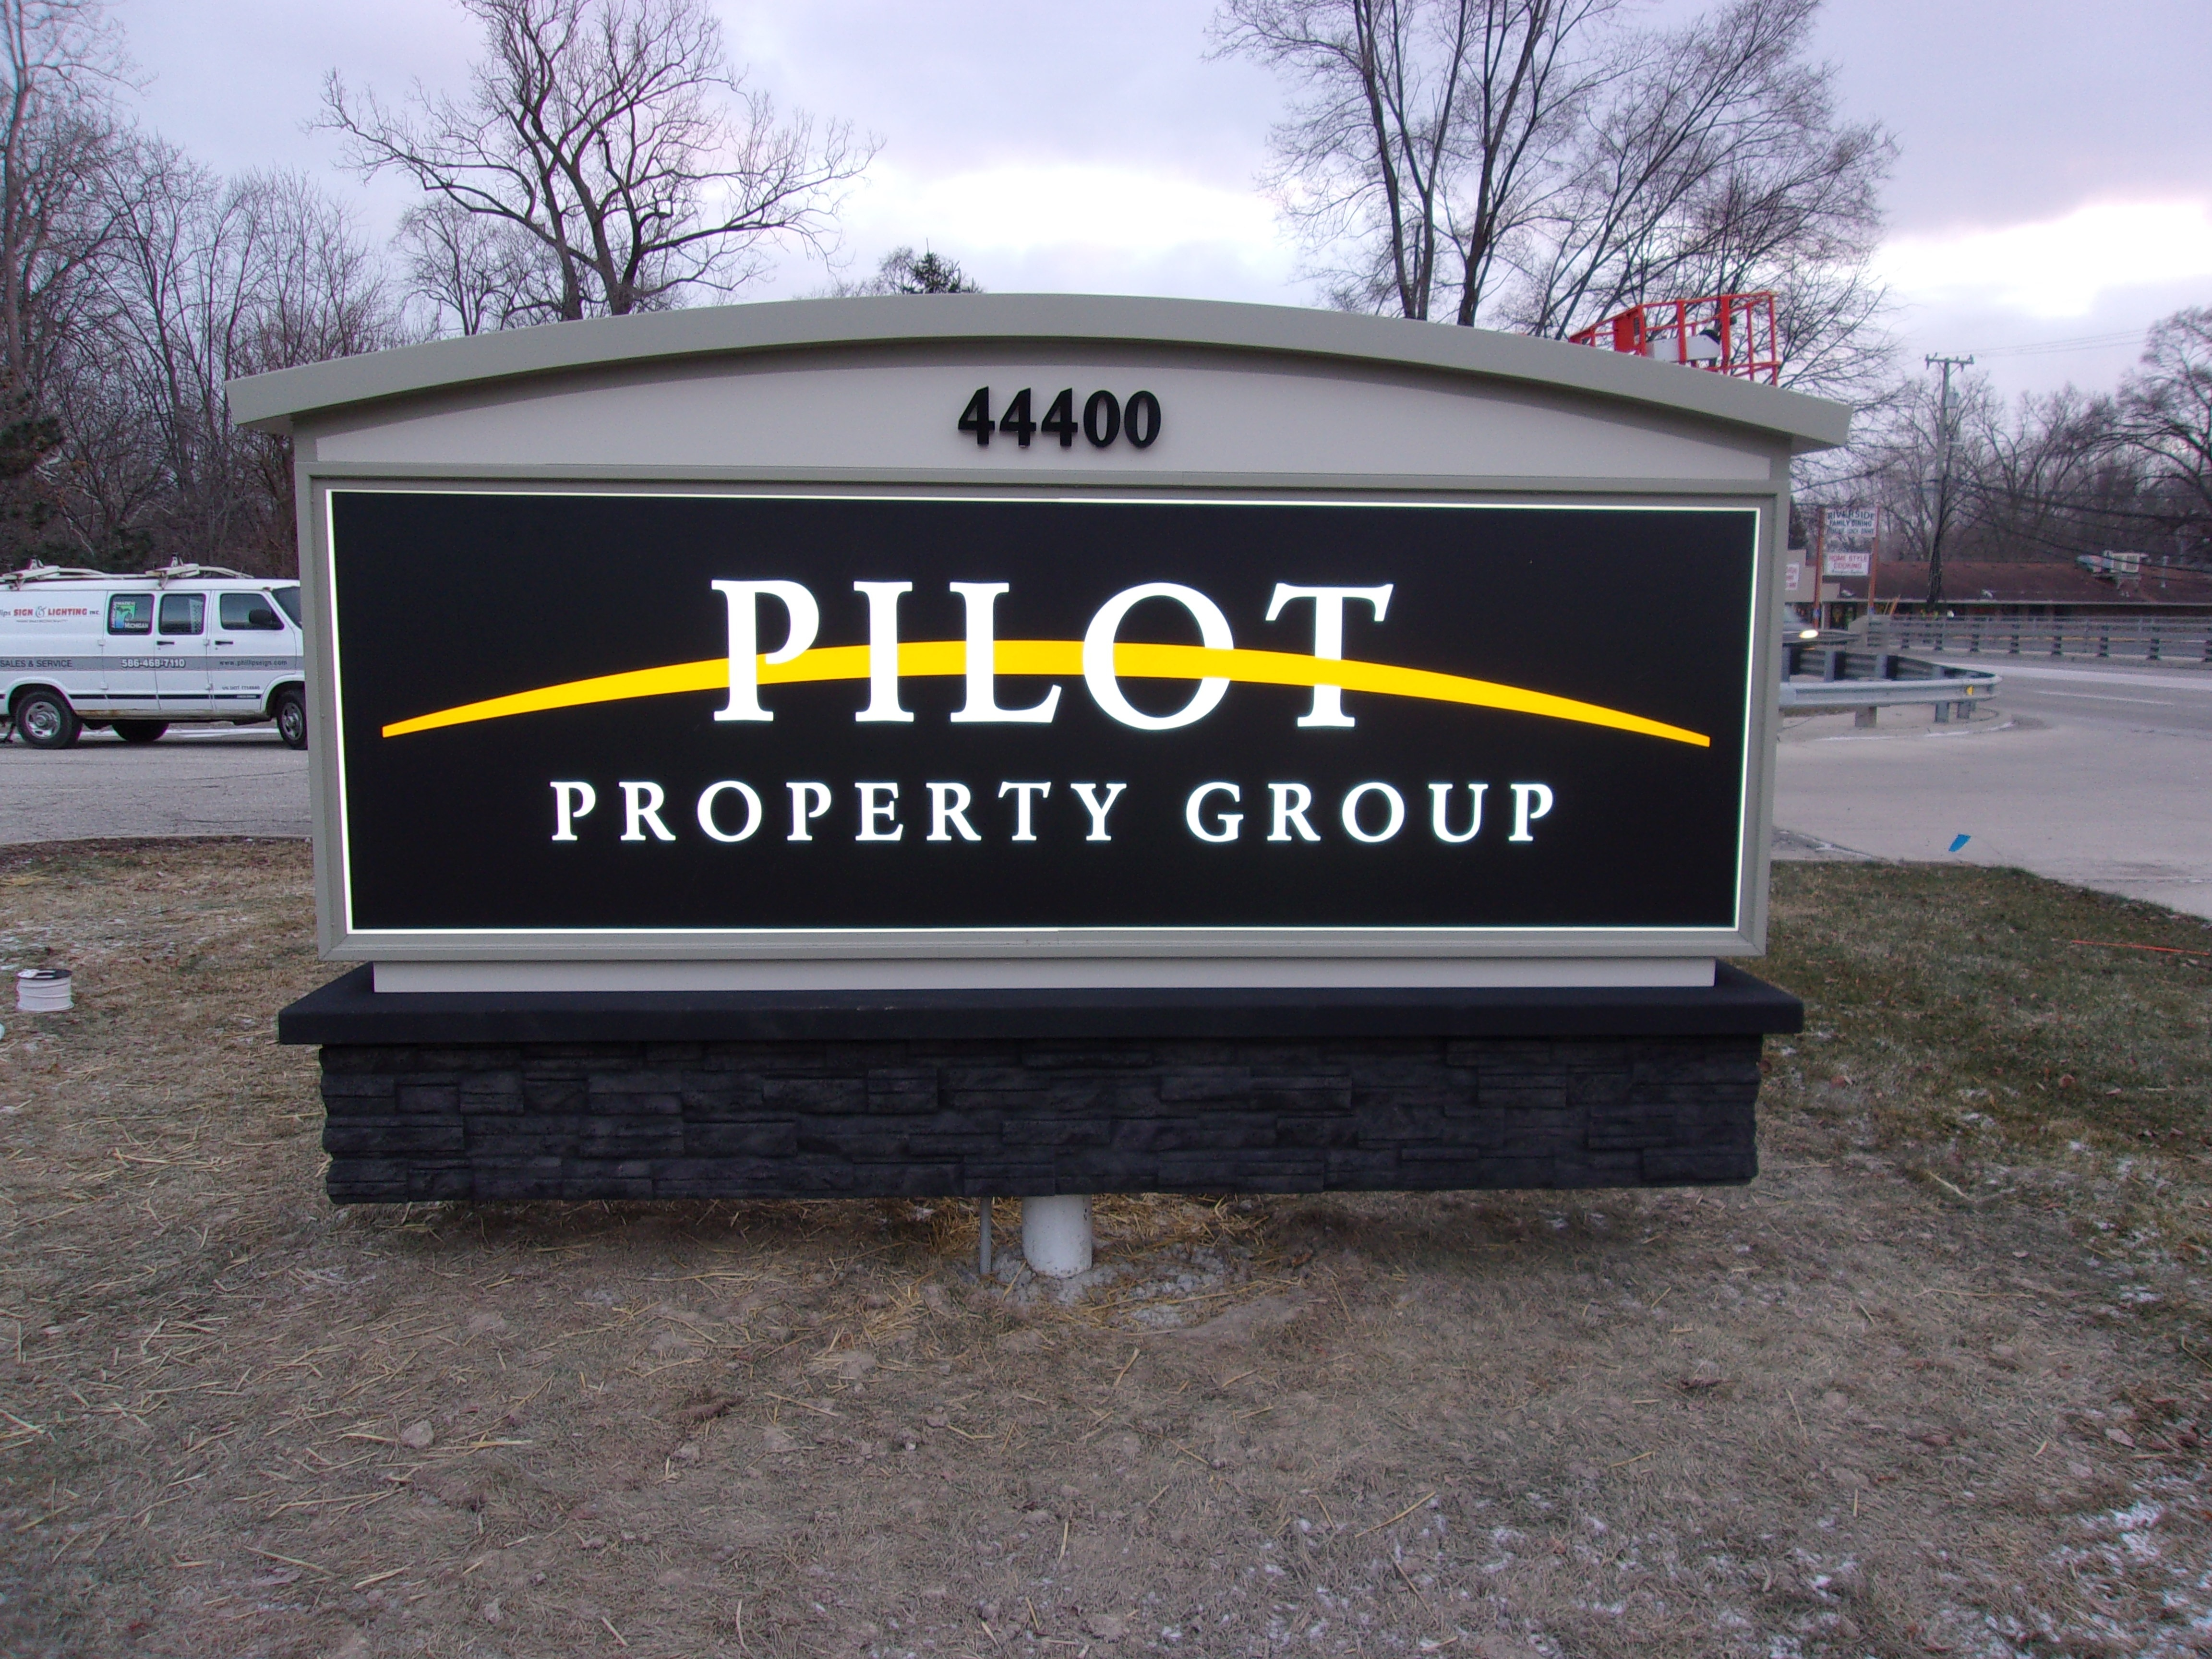 Pilot Property Group Sterling Hts